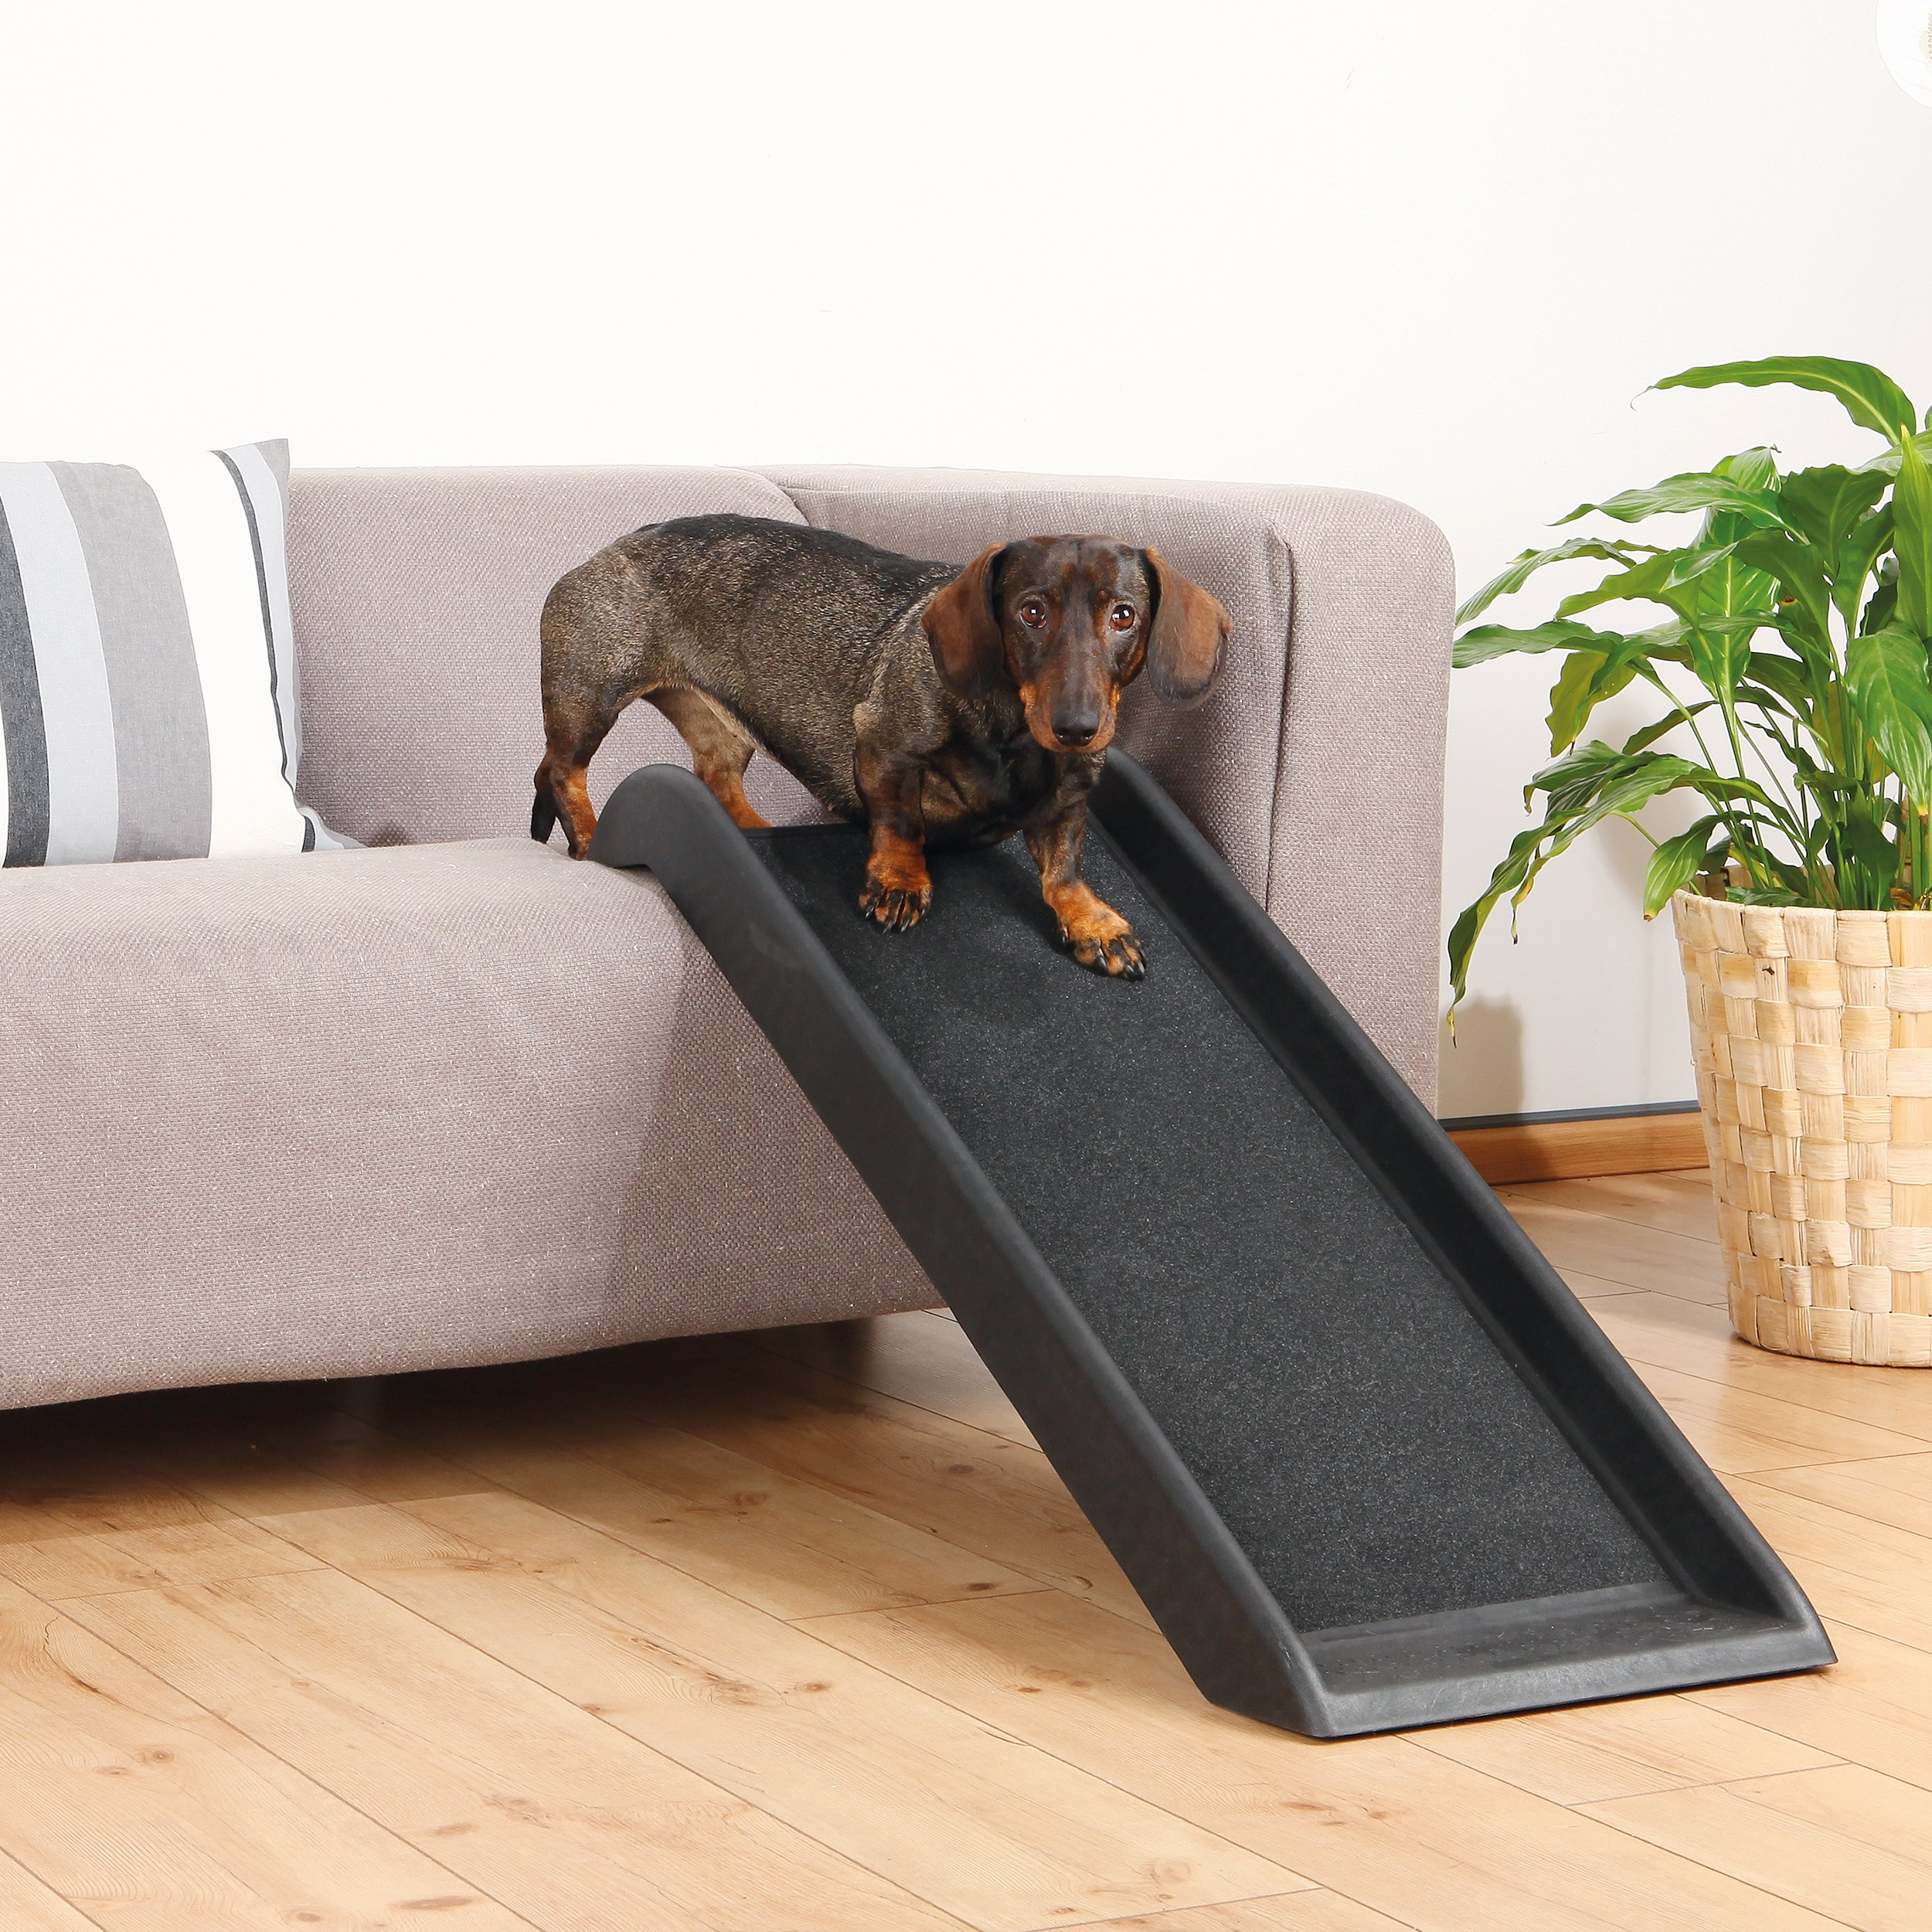 Trixie Pet Products 39 in. Safety Pet Ramp by TRIXIE Pet Products (Image #3)